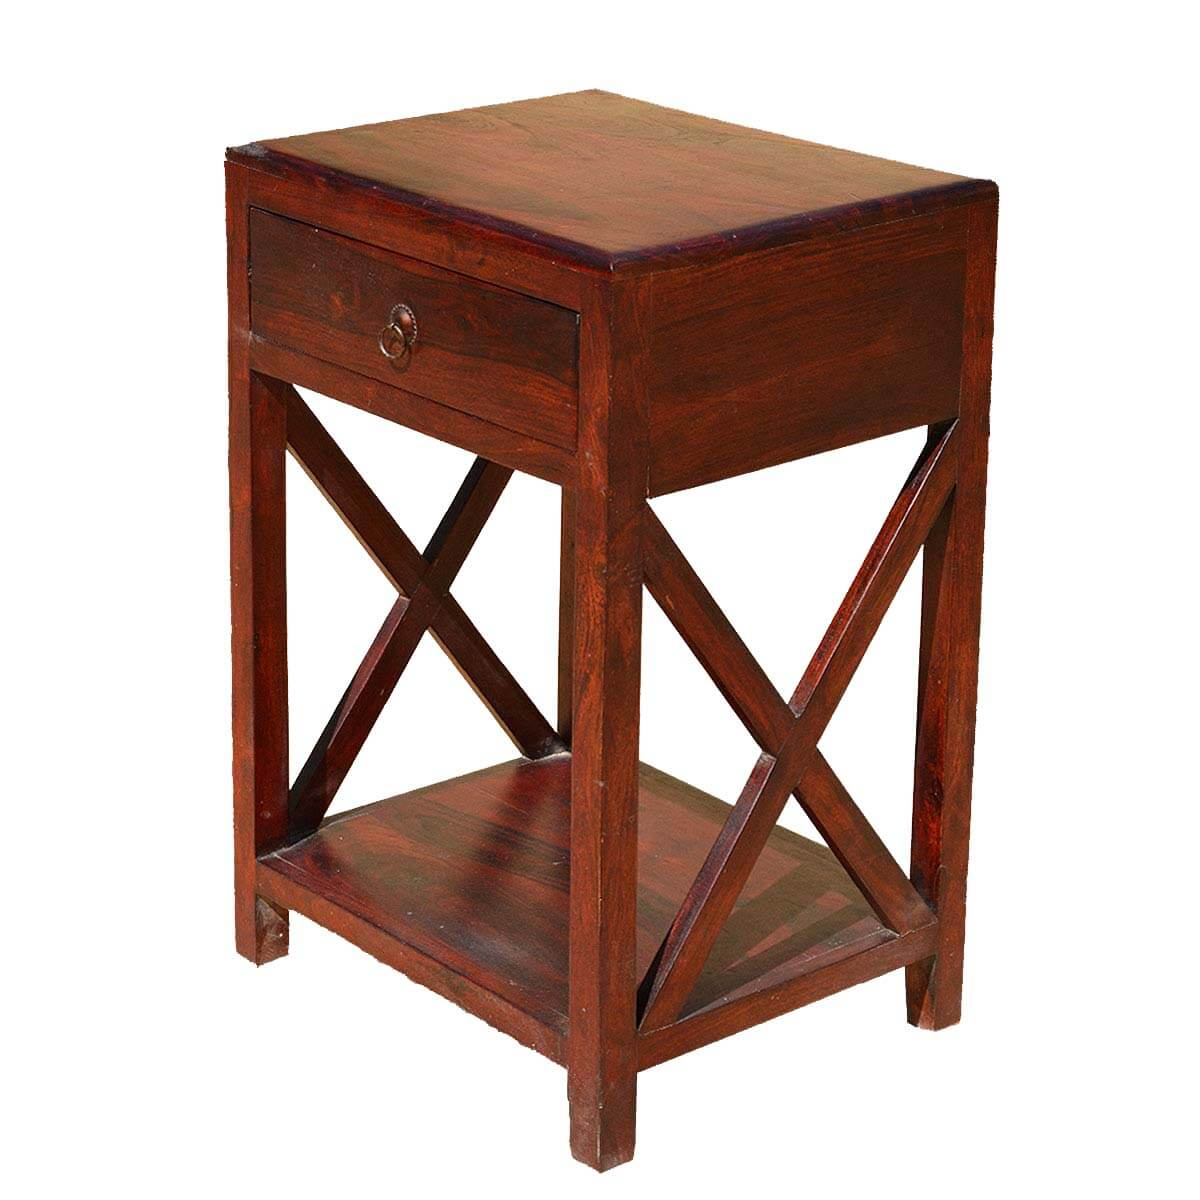 amberley double x solid wood 2 tier 1 drawer end table. Black Bedroom Furniture Sets. Home Design Ideas